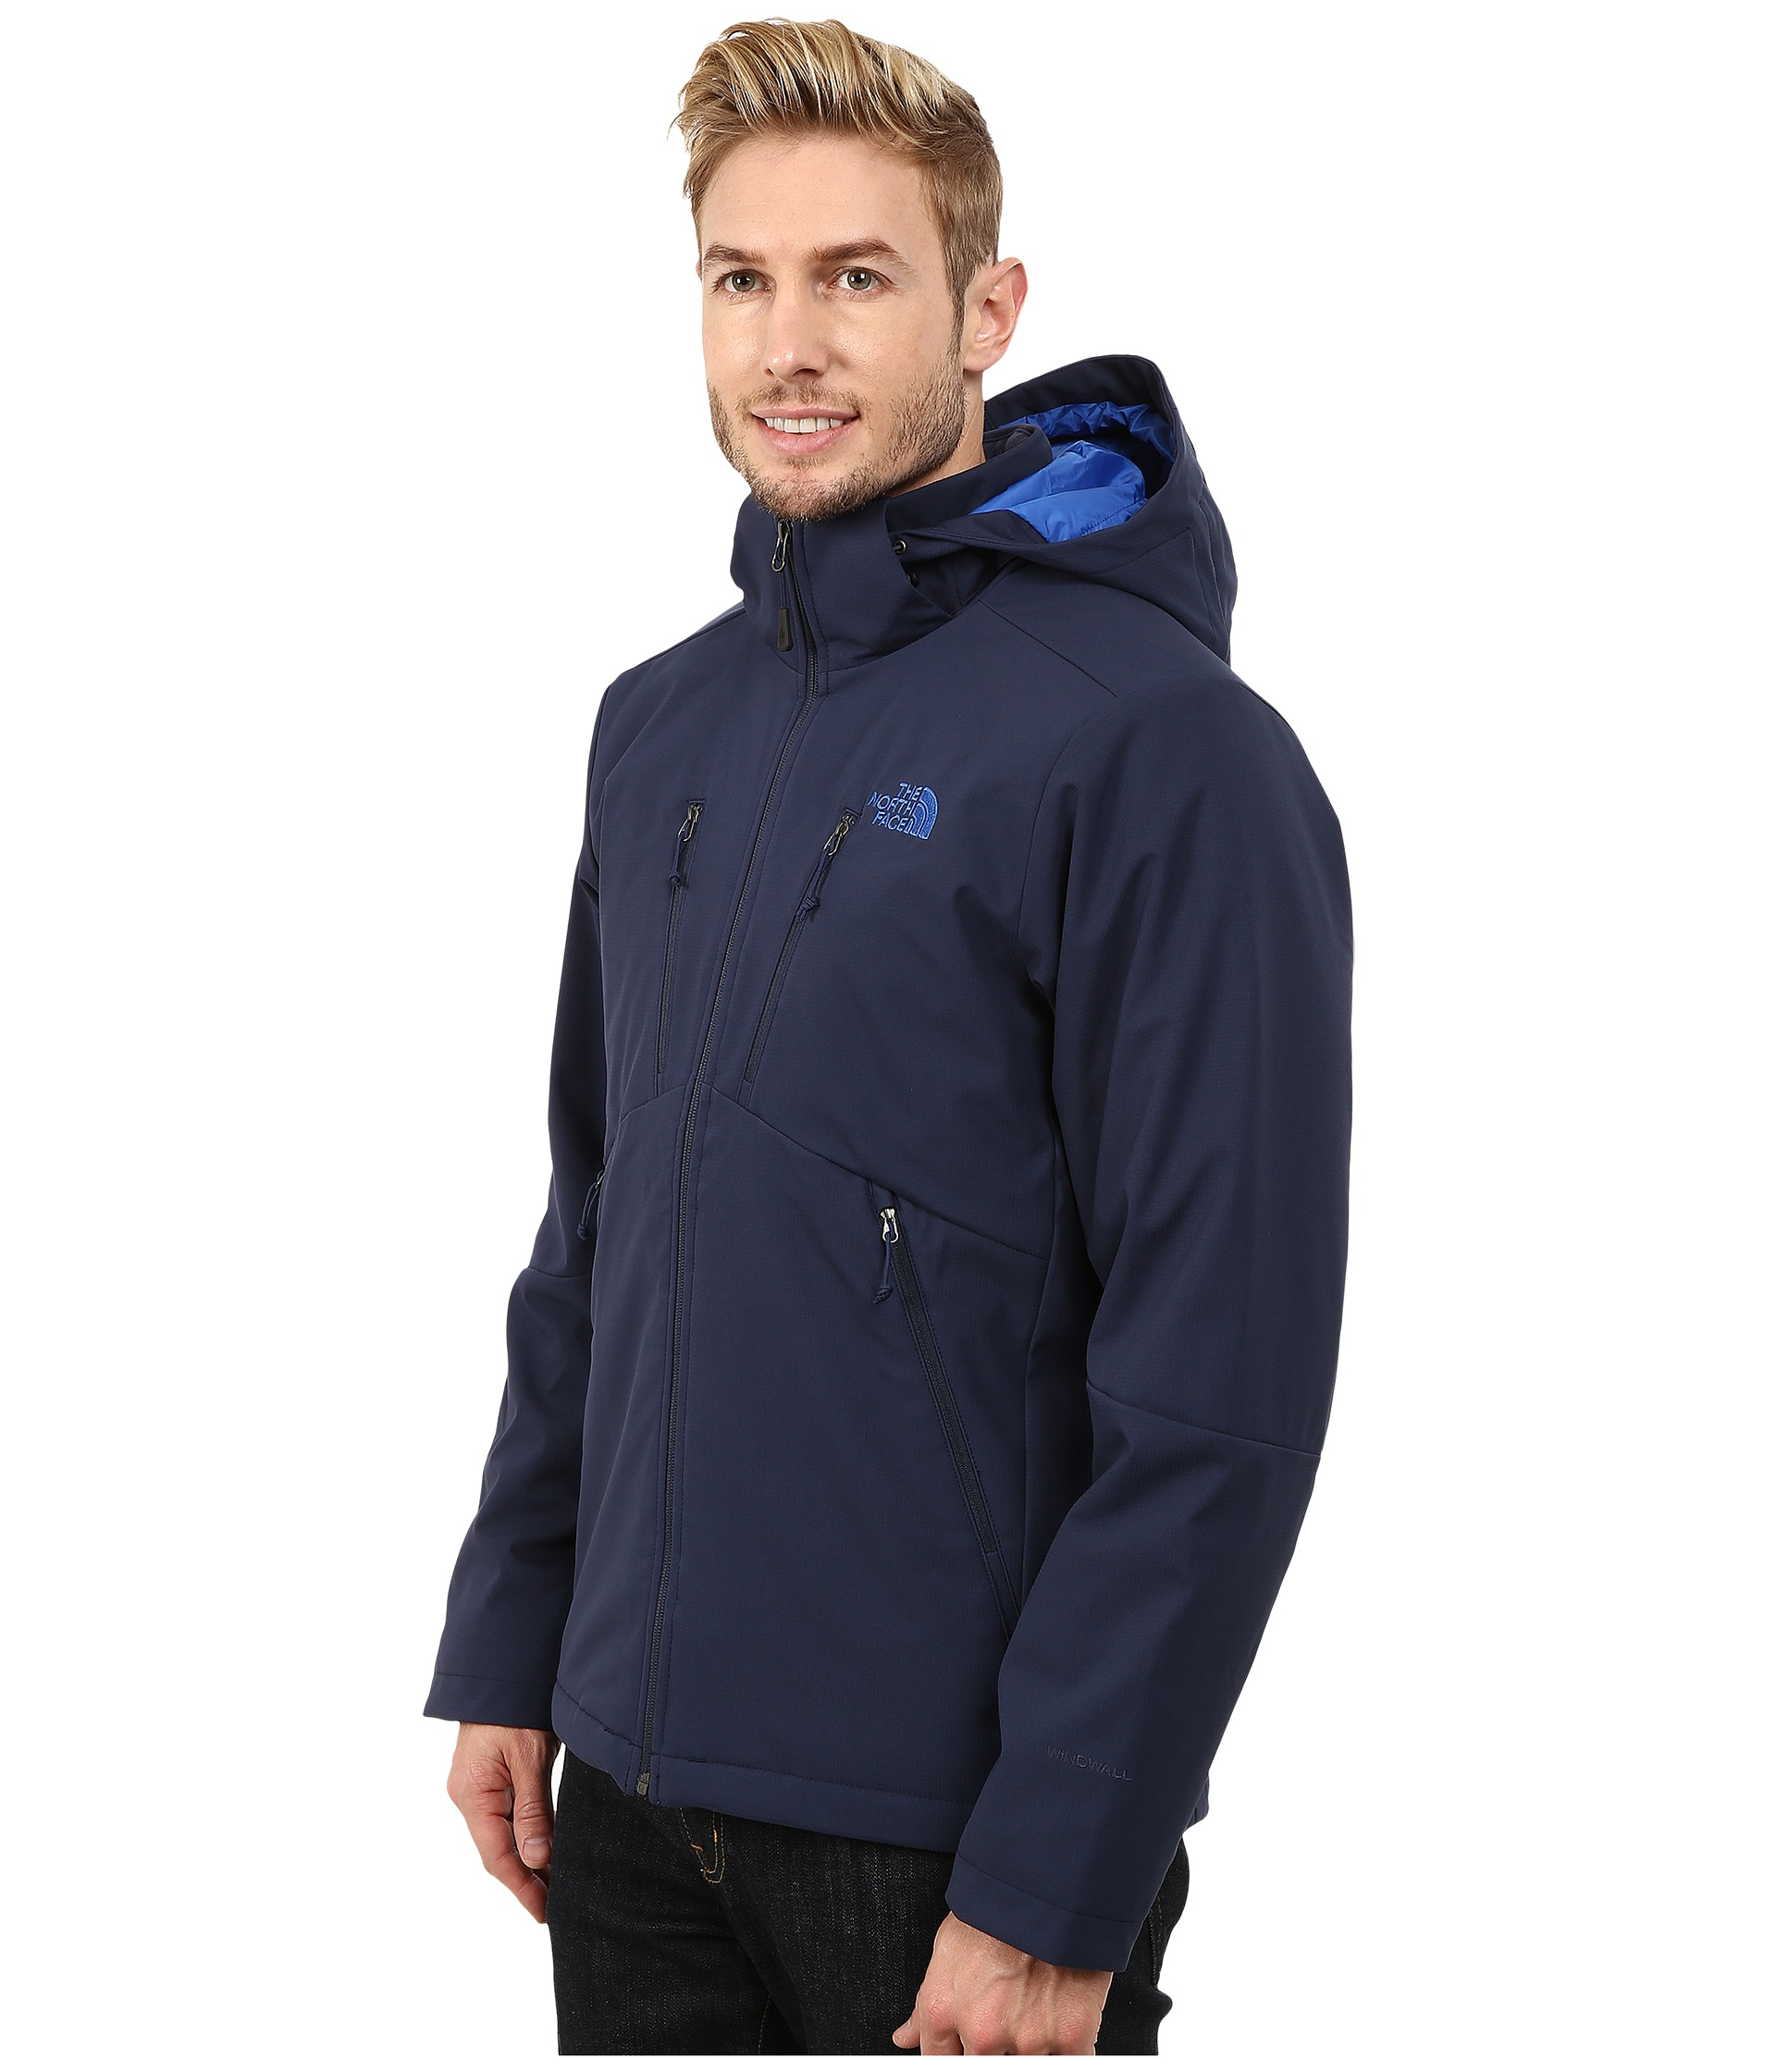 c82c685269b5 ... usa lyst the north face apex elevation jacket in blue for men 6bc70  f616d